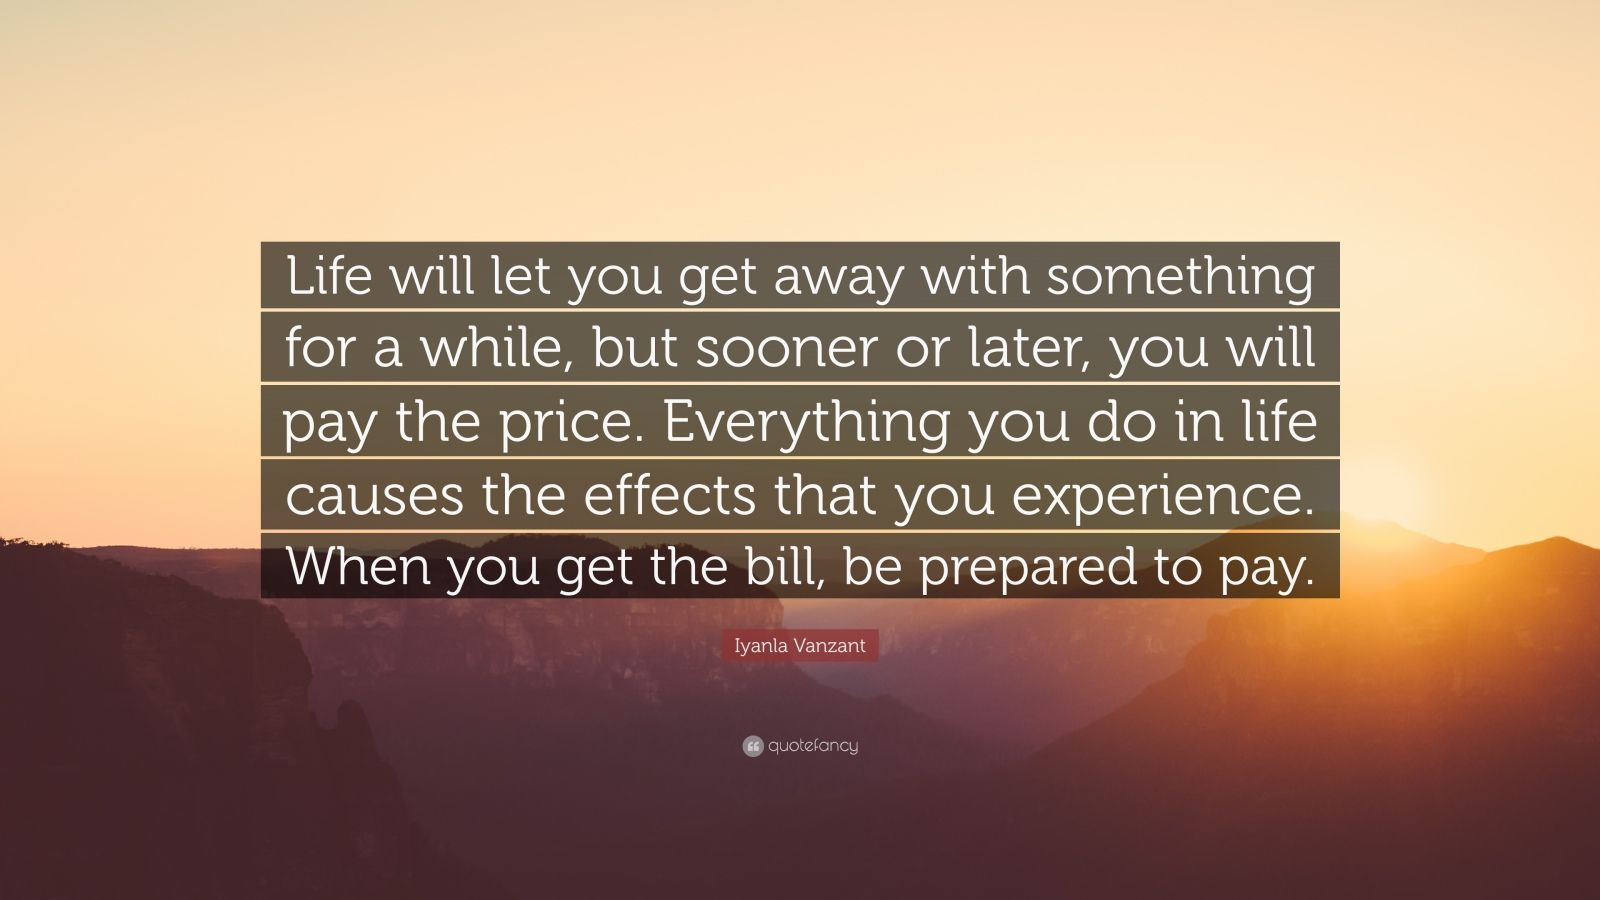 """Iyanla Vanzant Quote: """"Life will let you get away with something for a while, but sooner or later, you will pay the price. Everything you do in life causes the effects that you experience. When you get the bill, be prepared to pay."""""""